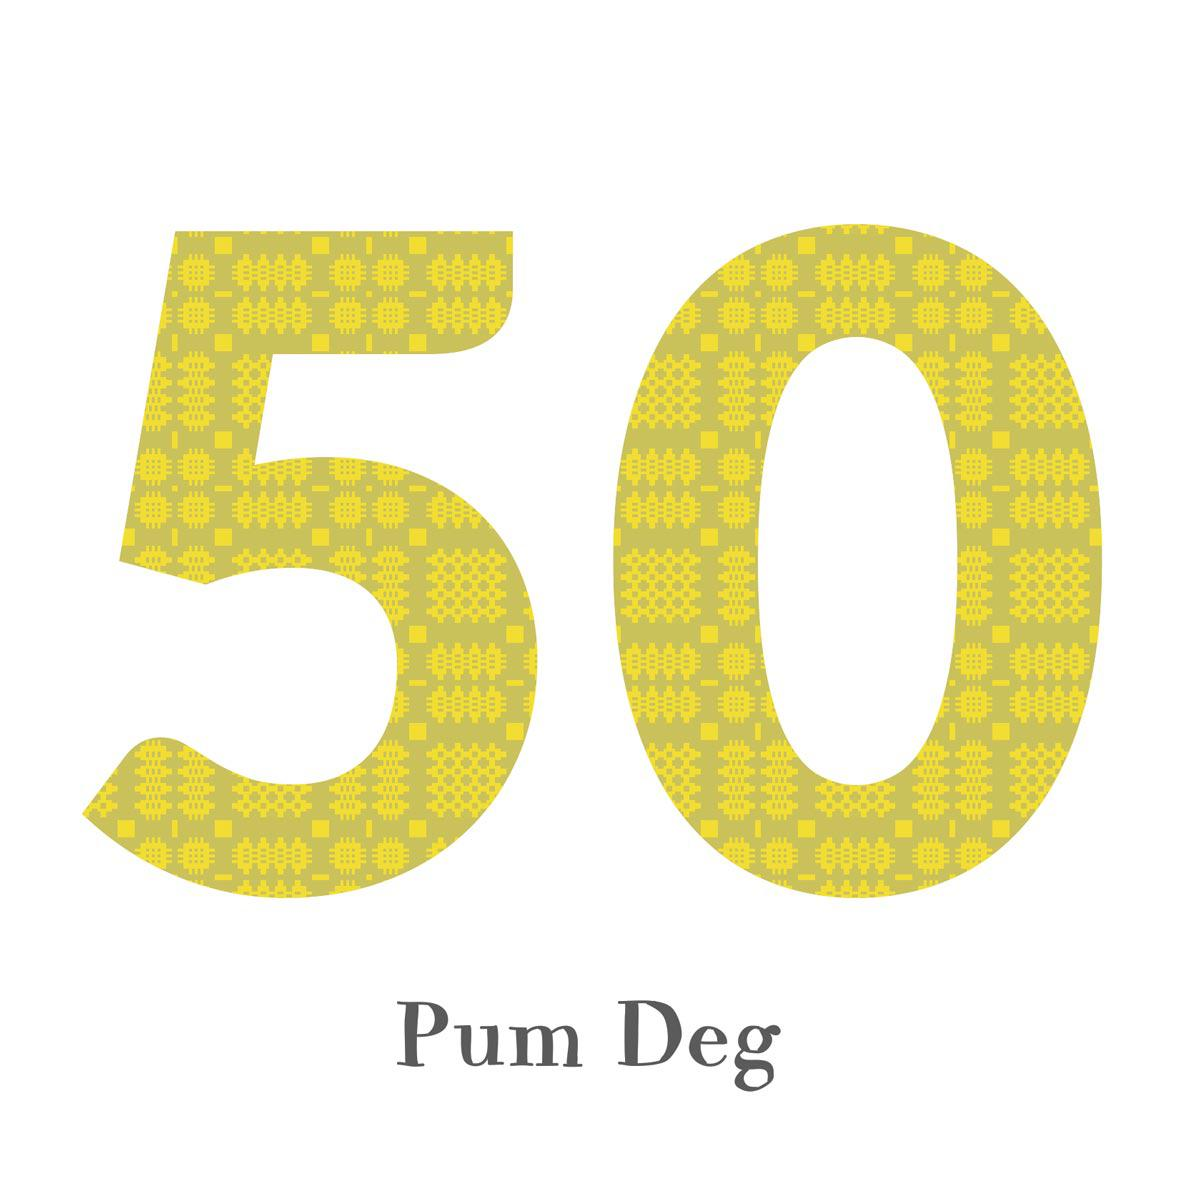 Card - Birthday / Anniversary - Pum Deg - 50-The Welsh Gift Shop